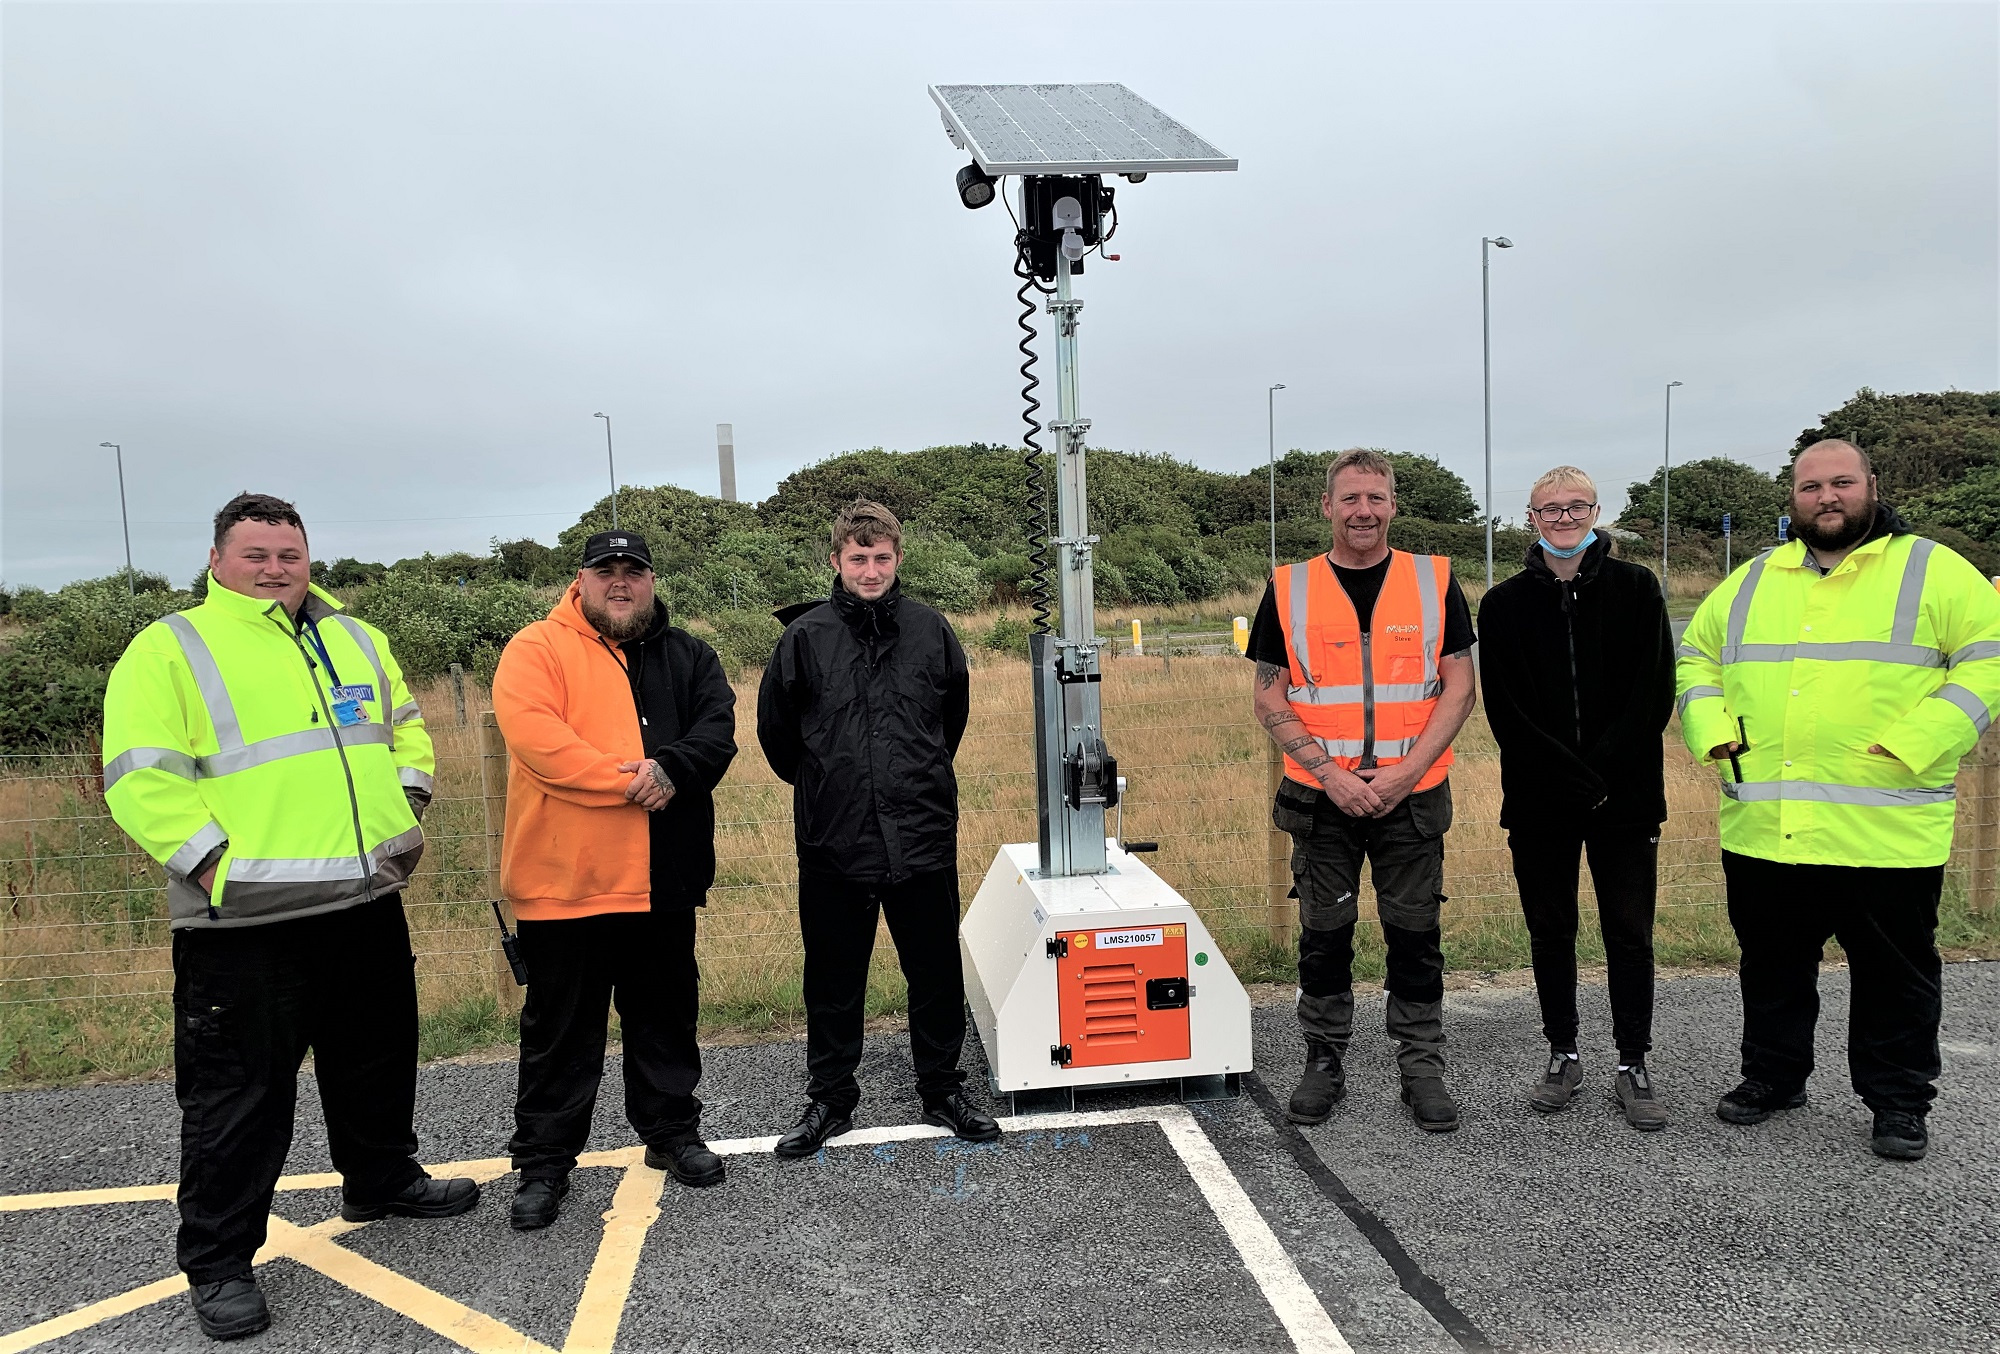 The MHM Plant team at Anglesey Lorry Park